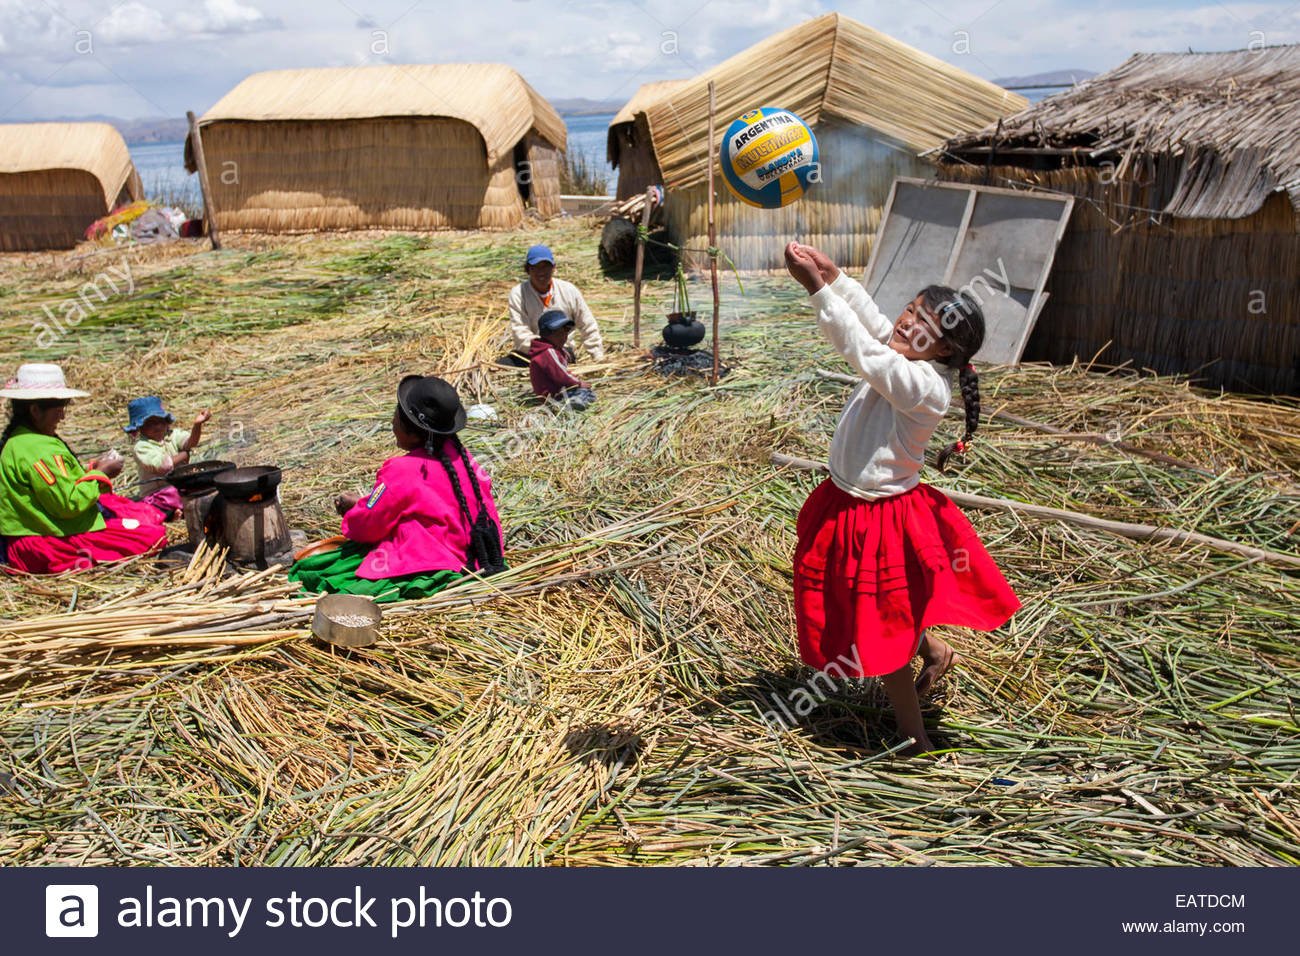 Children playing, women and men working on floating man-made reed islands. - Stock Image